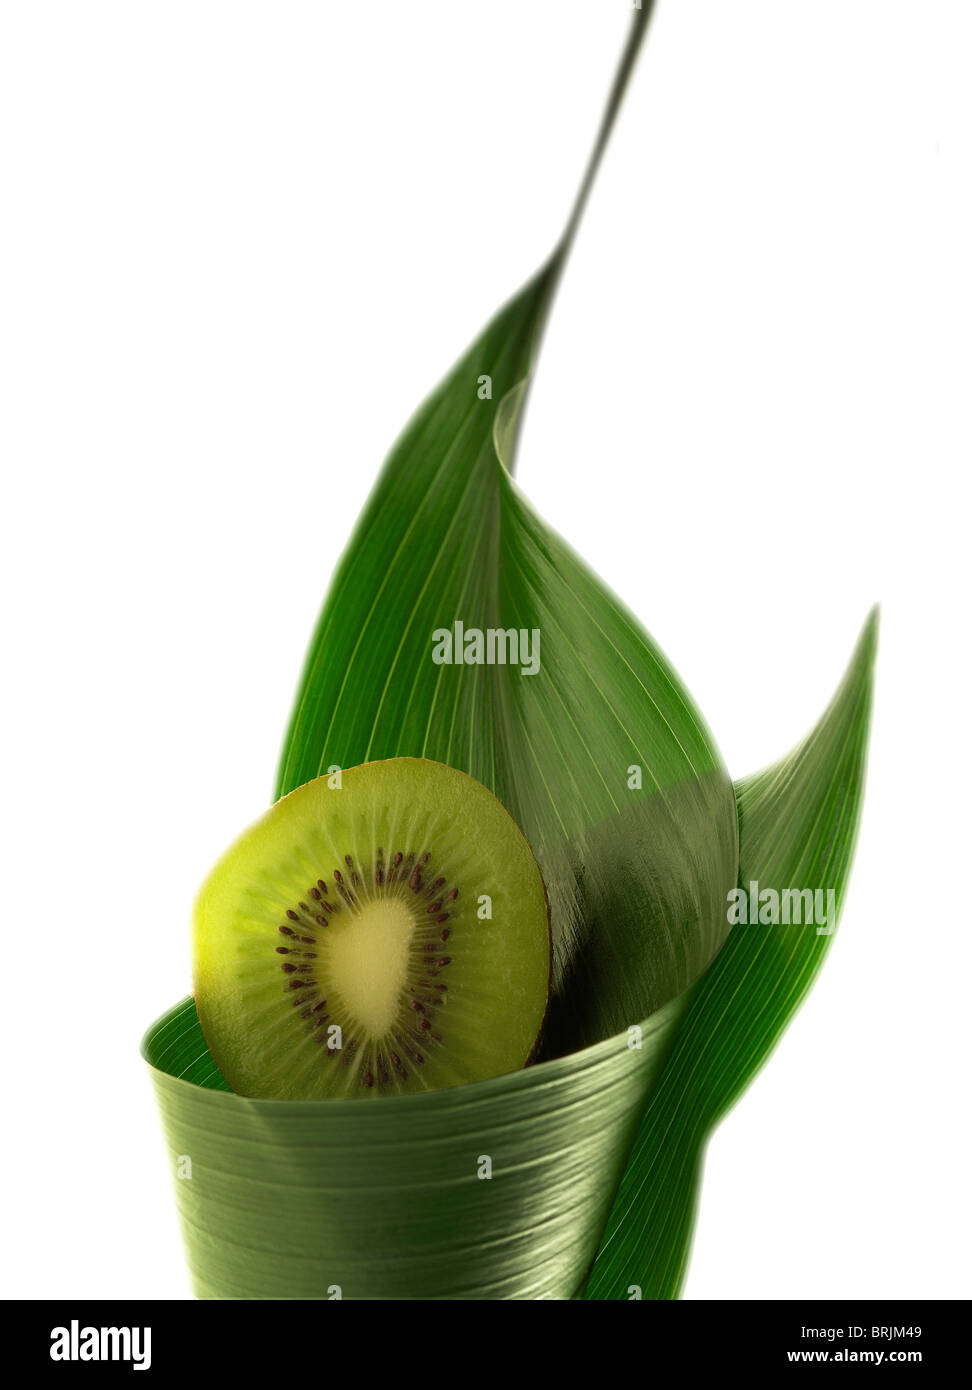 Sliced kiwi wrapped in leaf - Stock Image